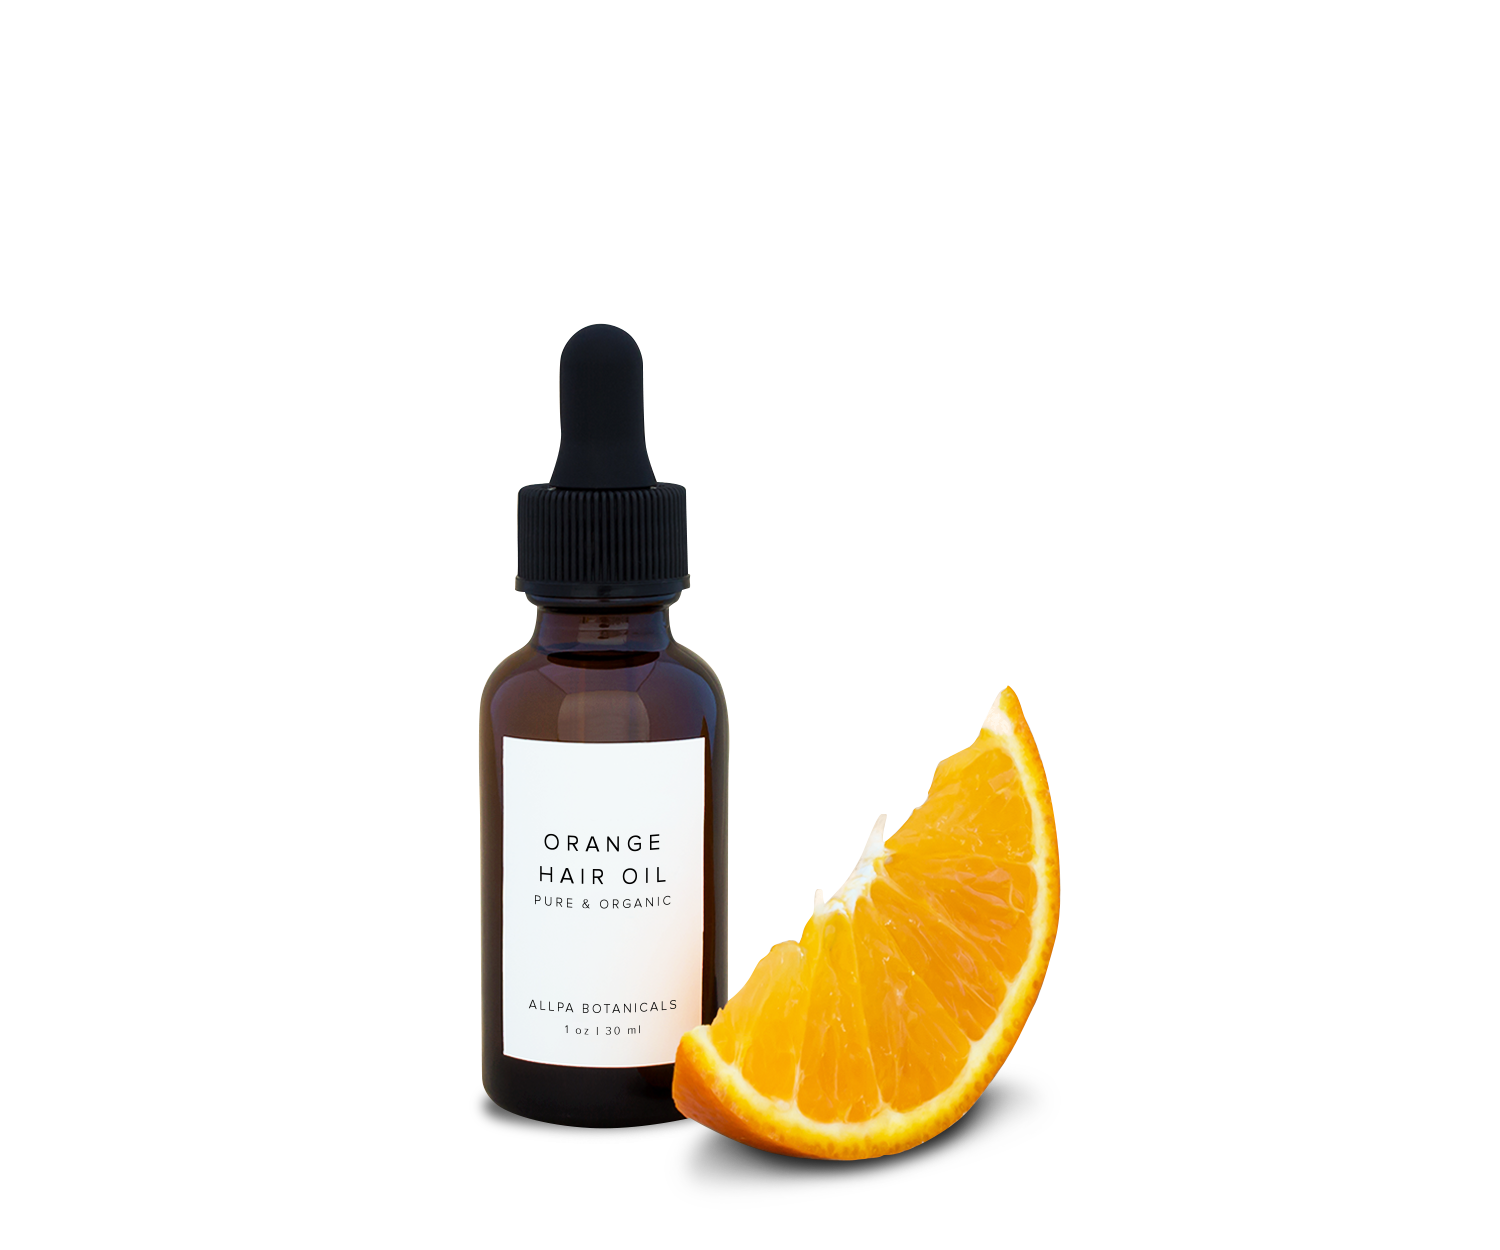 Orange Hair Oil